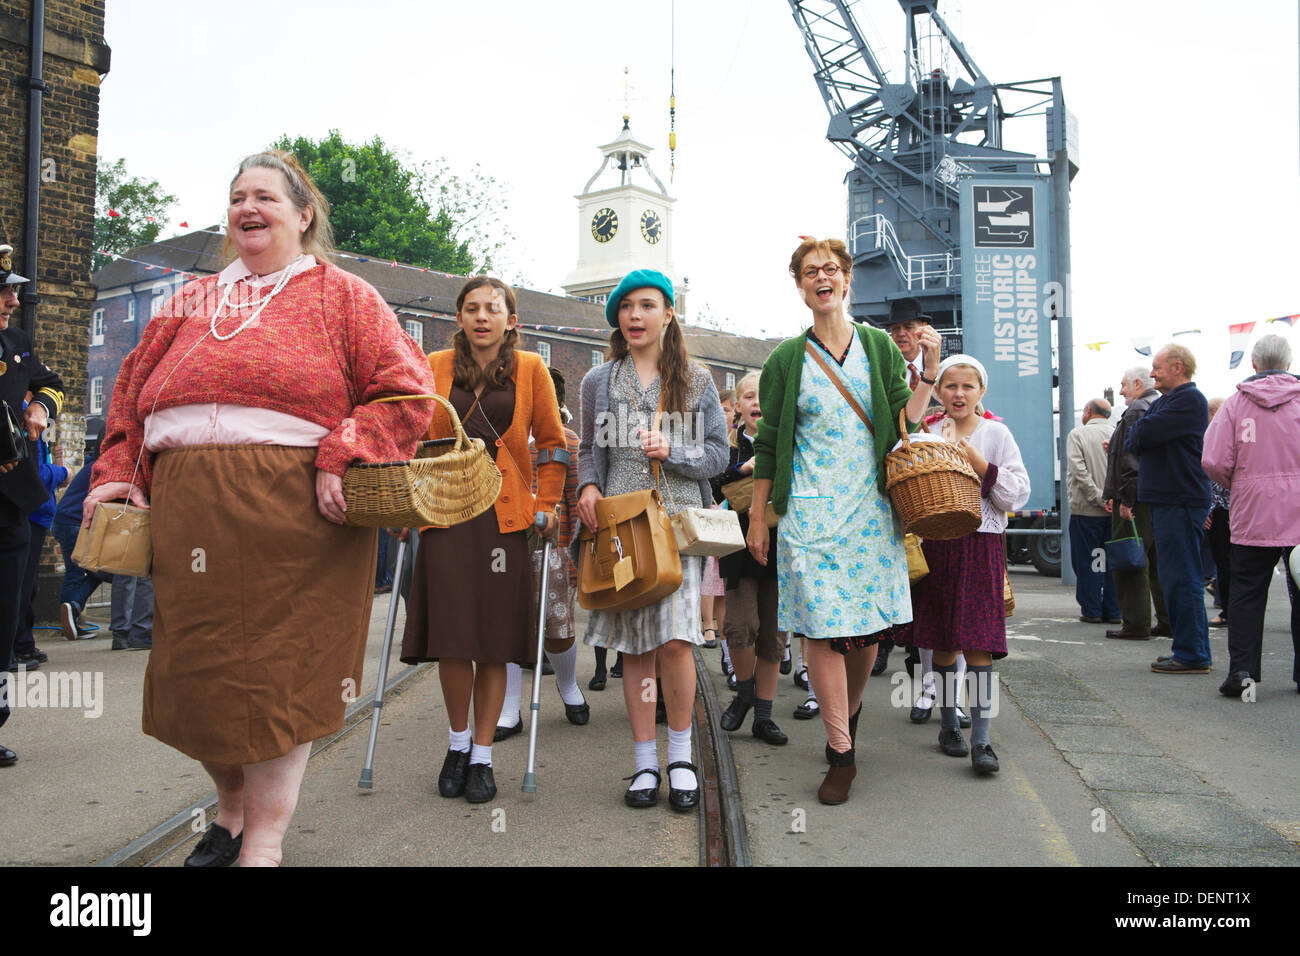 Chatham, UK. 21st Sep, 2013. Salute to the 40's - Britain's 1940's Home Front Event at The Historic Dockyard Chatham. Stock Photo